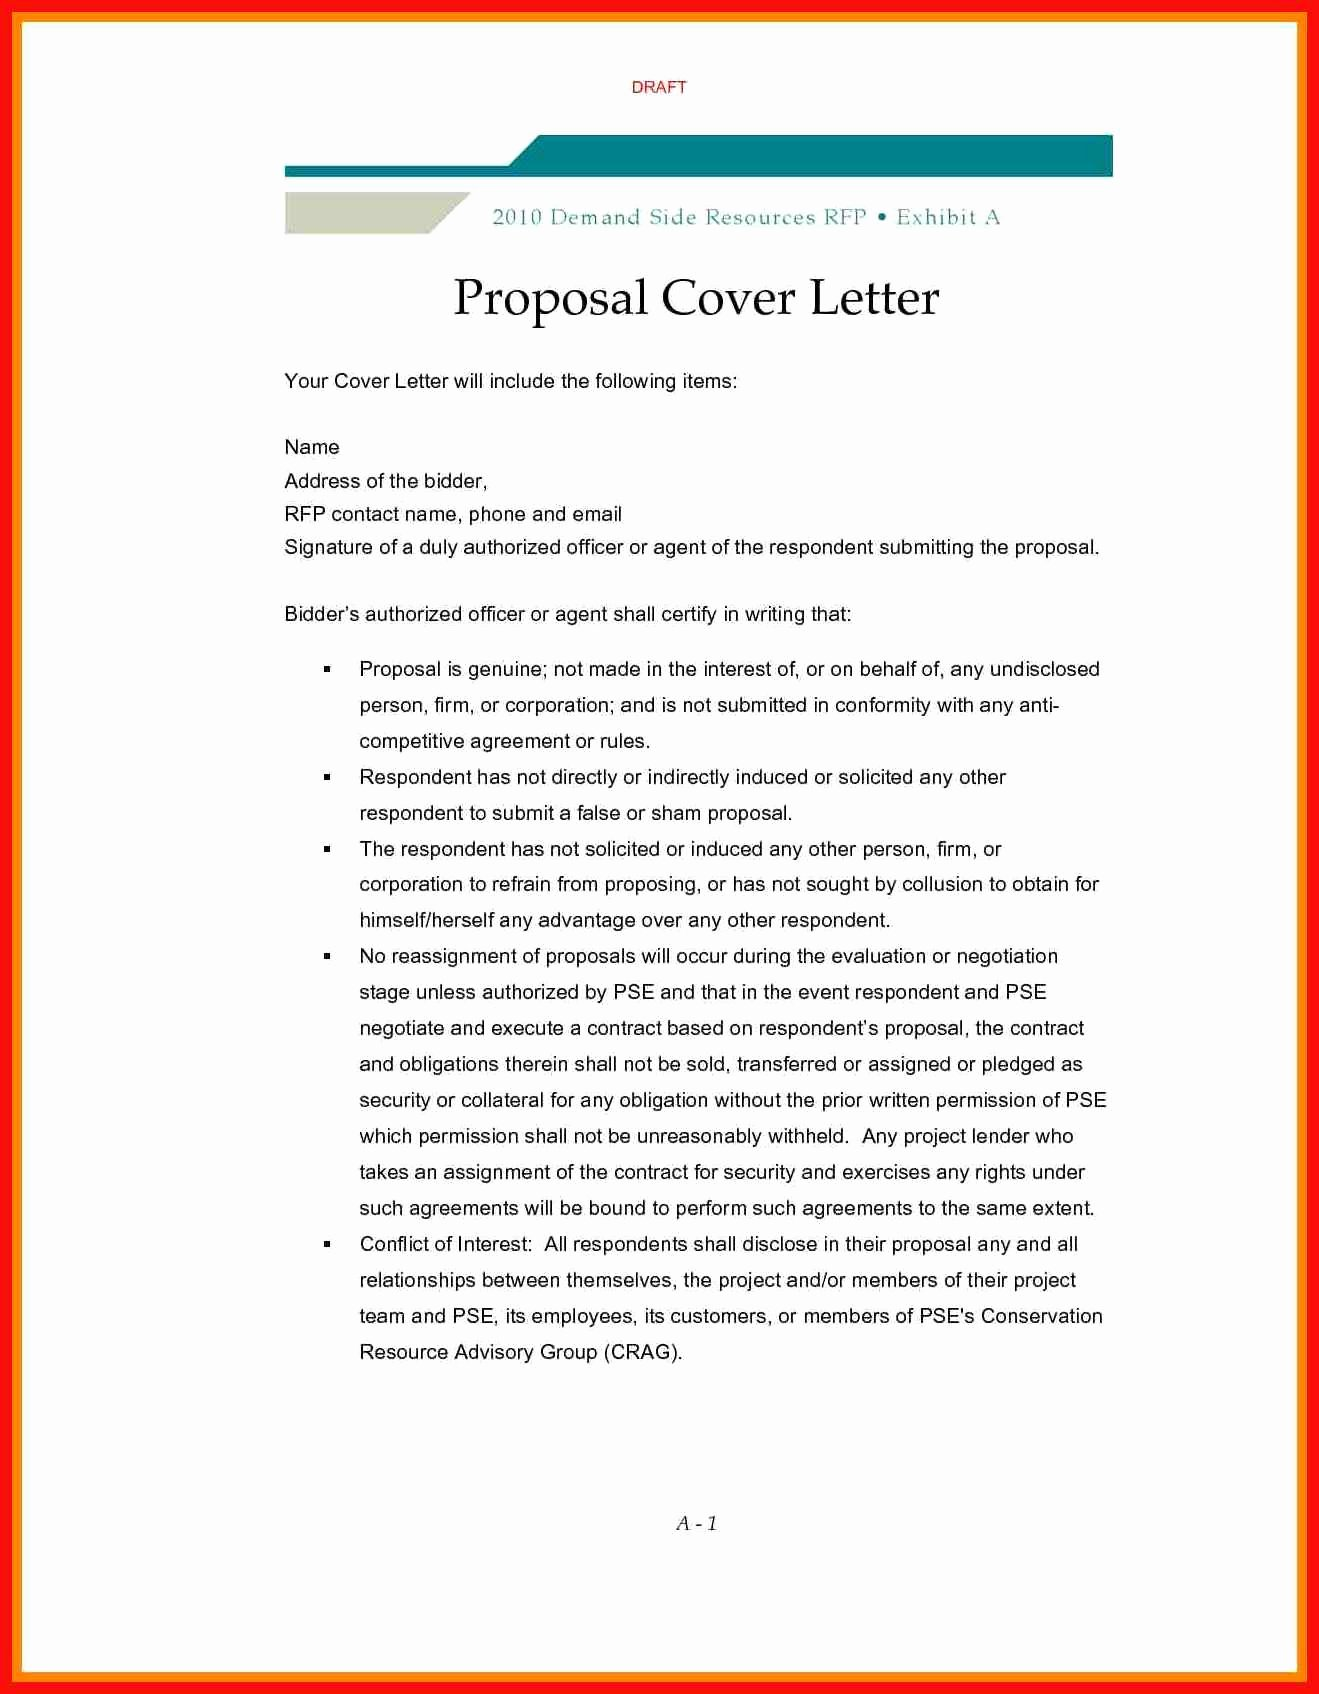 Sample Cover Letter for Grant Proposal Lovely Rfp Cover Letter Template